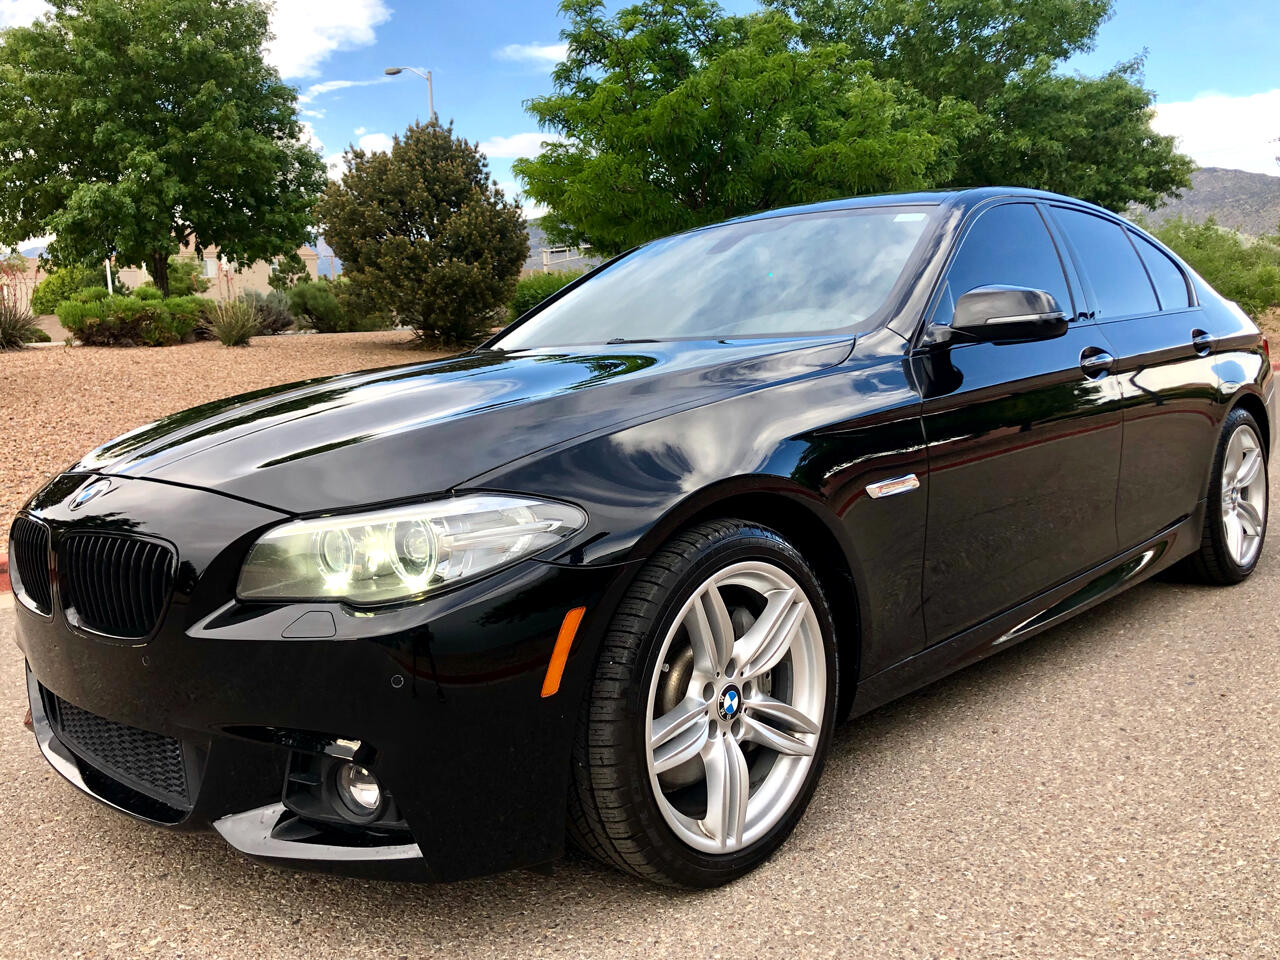 2015 BMW 5 Series 4dr Sedan 535i xDrive M-Sport AWD